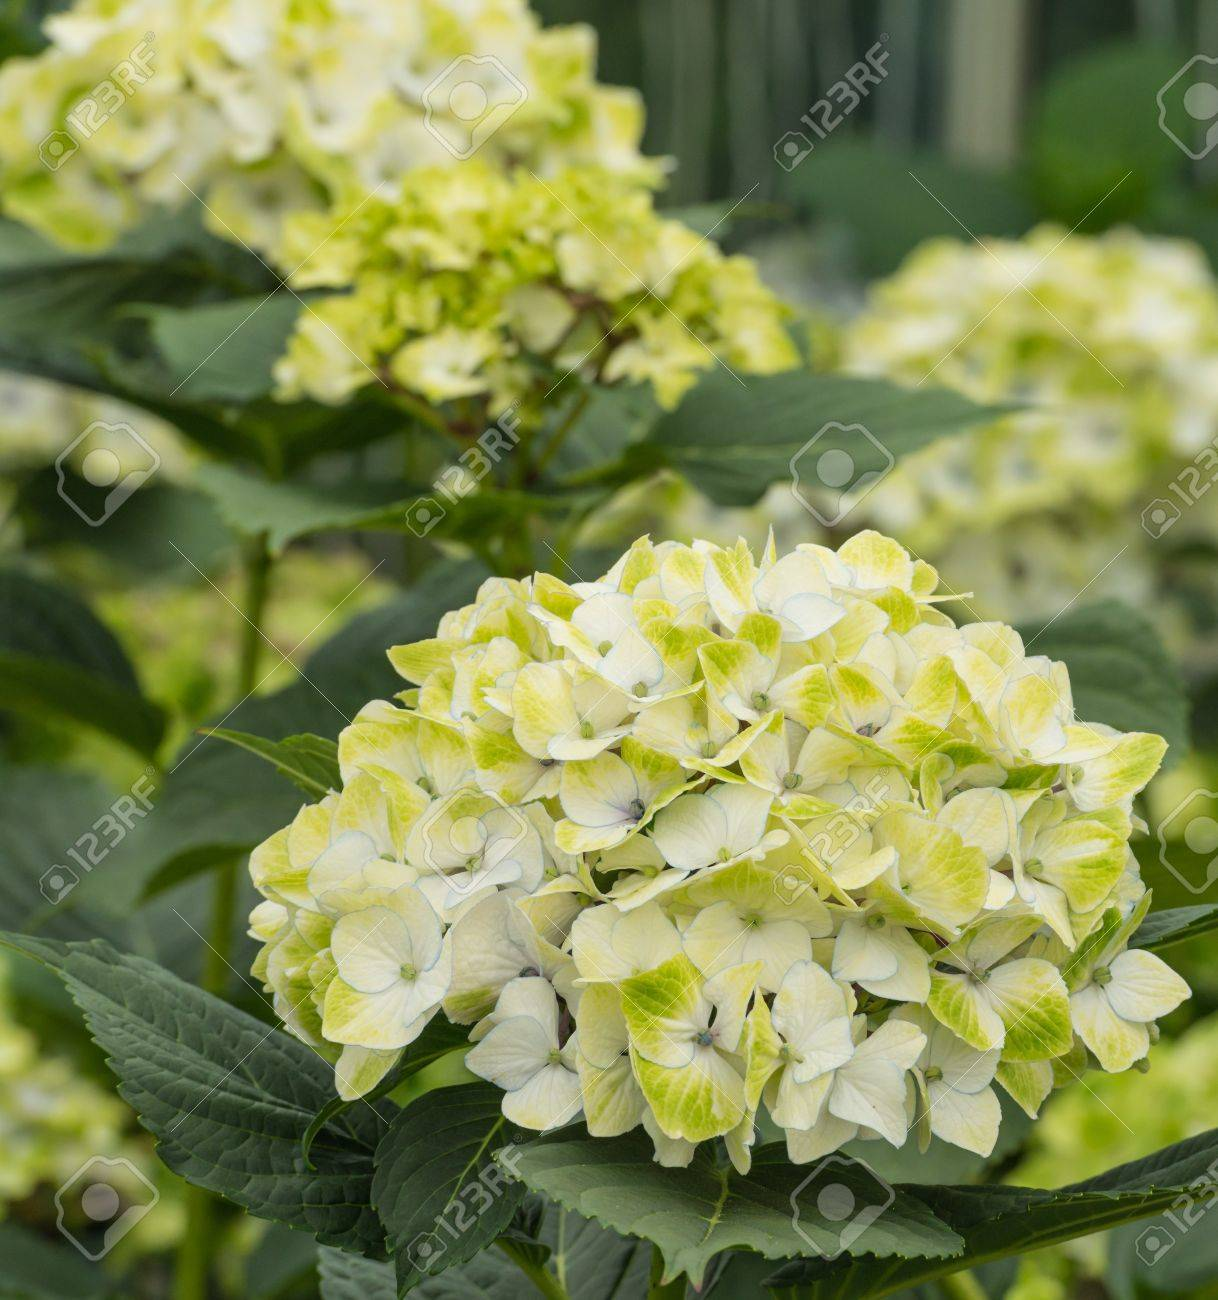 Yellow and white blooming hydrangea plants in a cut flower nursery stock photo yellow and white blooming hydrangea plants in a cut flower nursery specialised in hydrangea flowers for export mightylinksfo